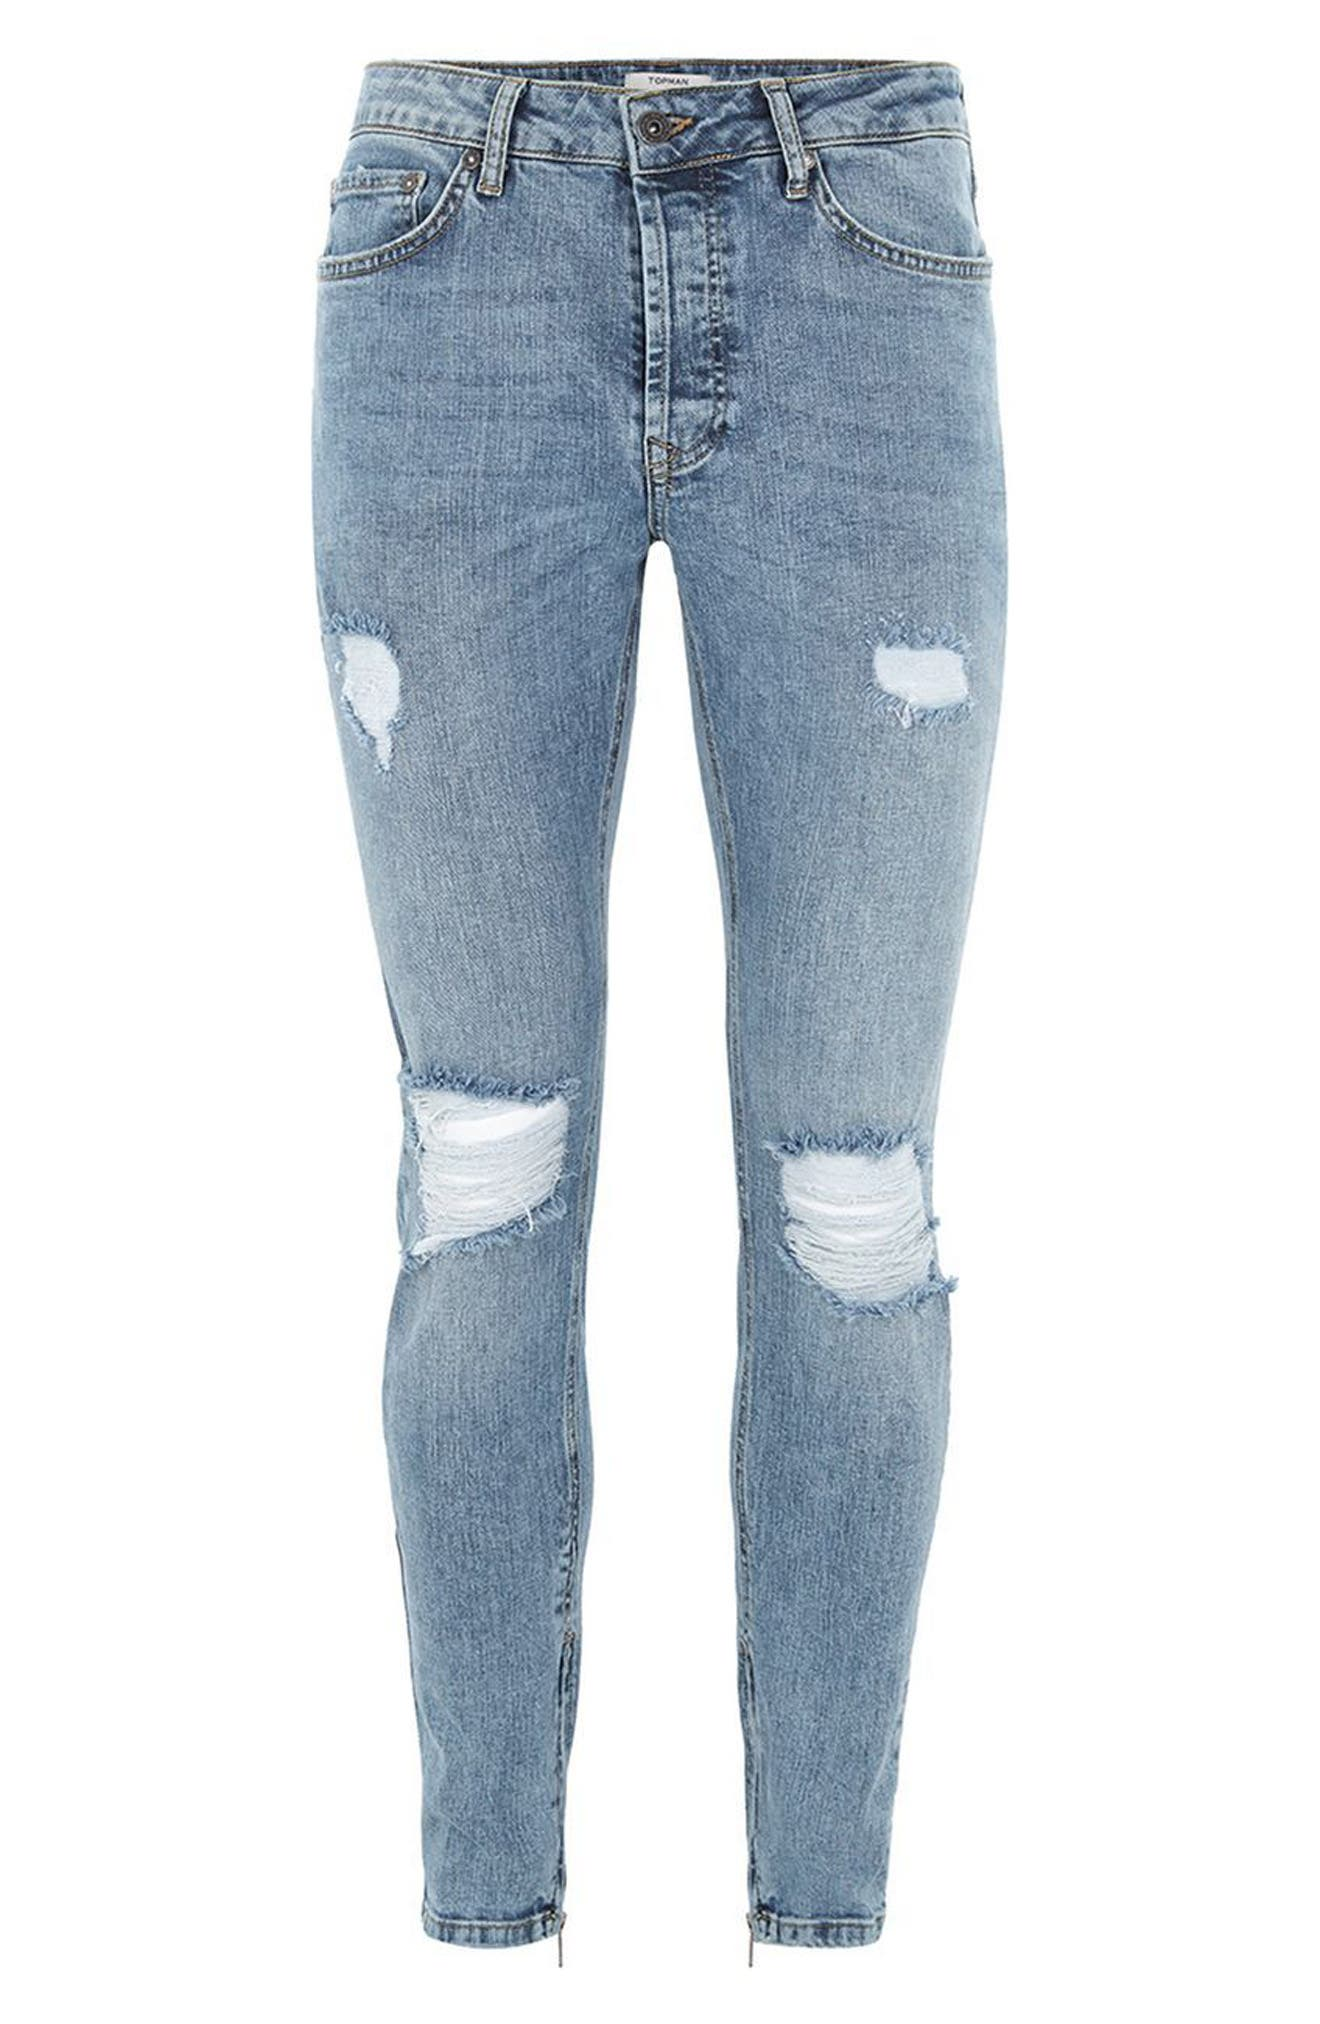 Ripped Acid Wash Skinny Jeans,                             Alternate thumbnail 4, color,                             BLUE